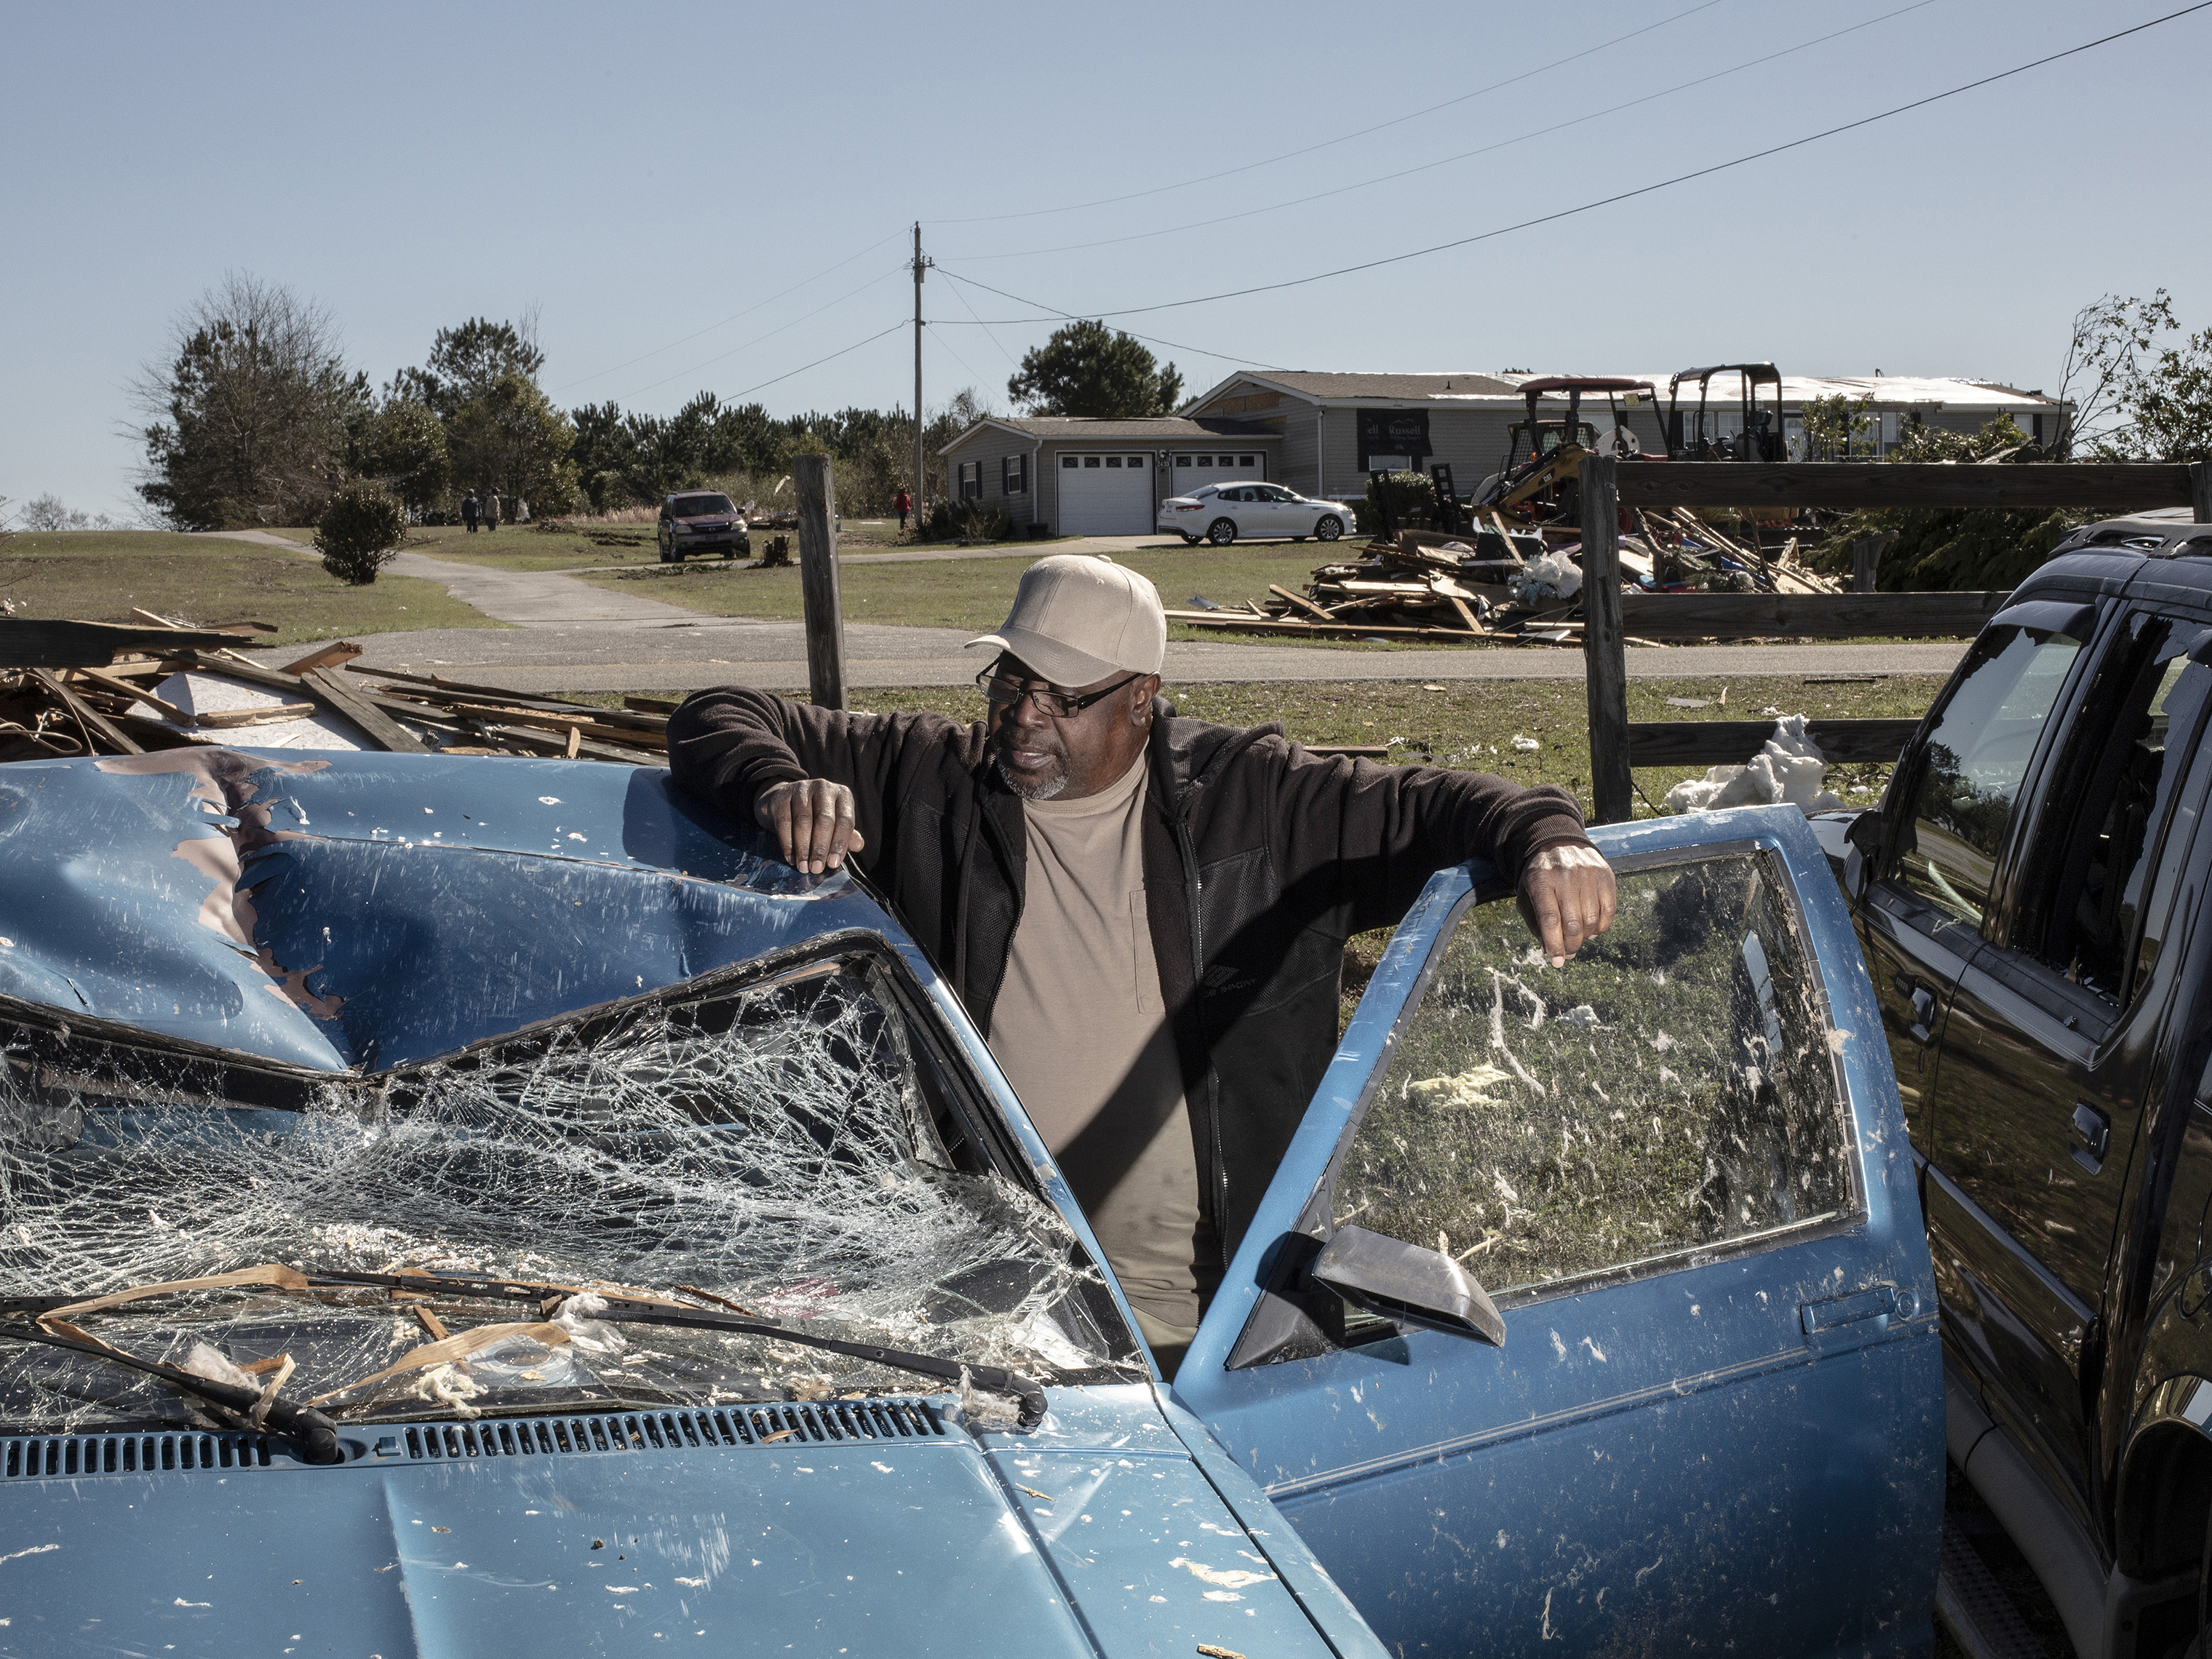 Jimmie Tables poses for a portrait with his truck that was destroyed after a tornado passed over killing several people and destroying homes in Beauregard, Alabama on March 4, 2019.